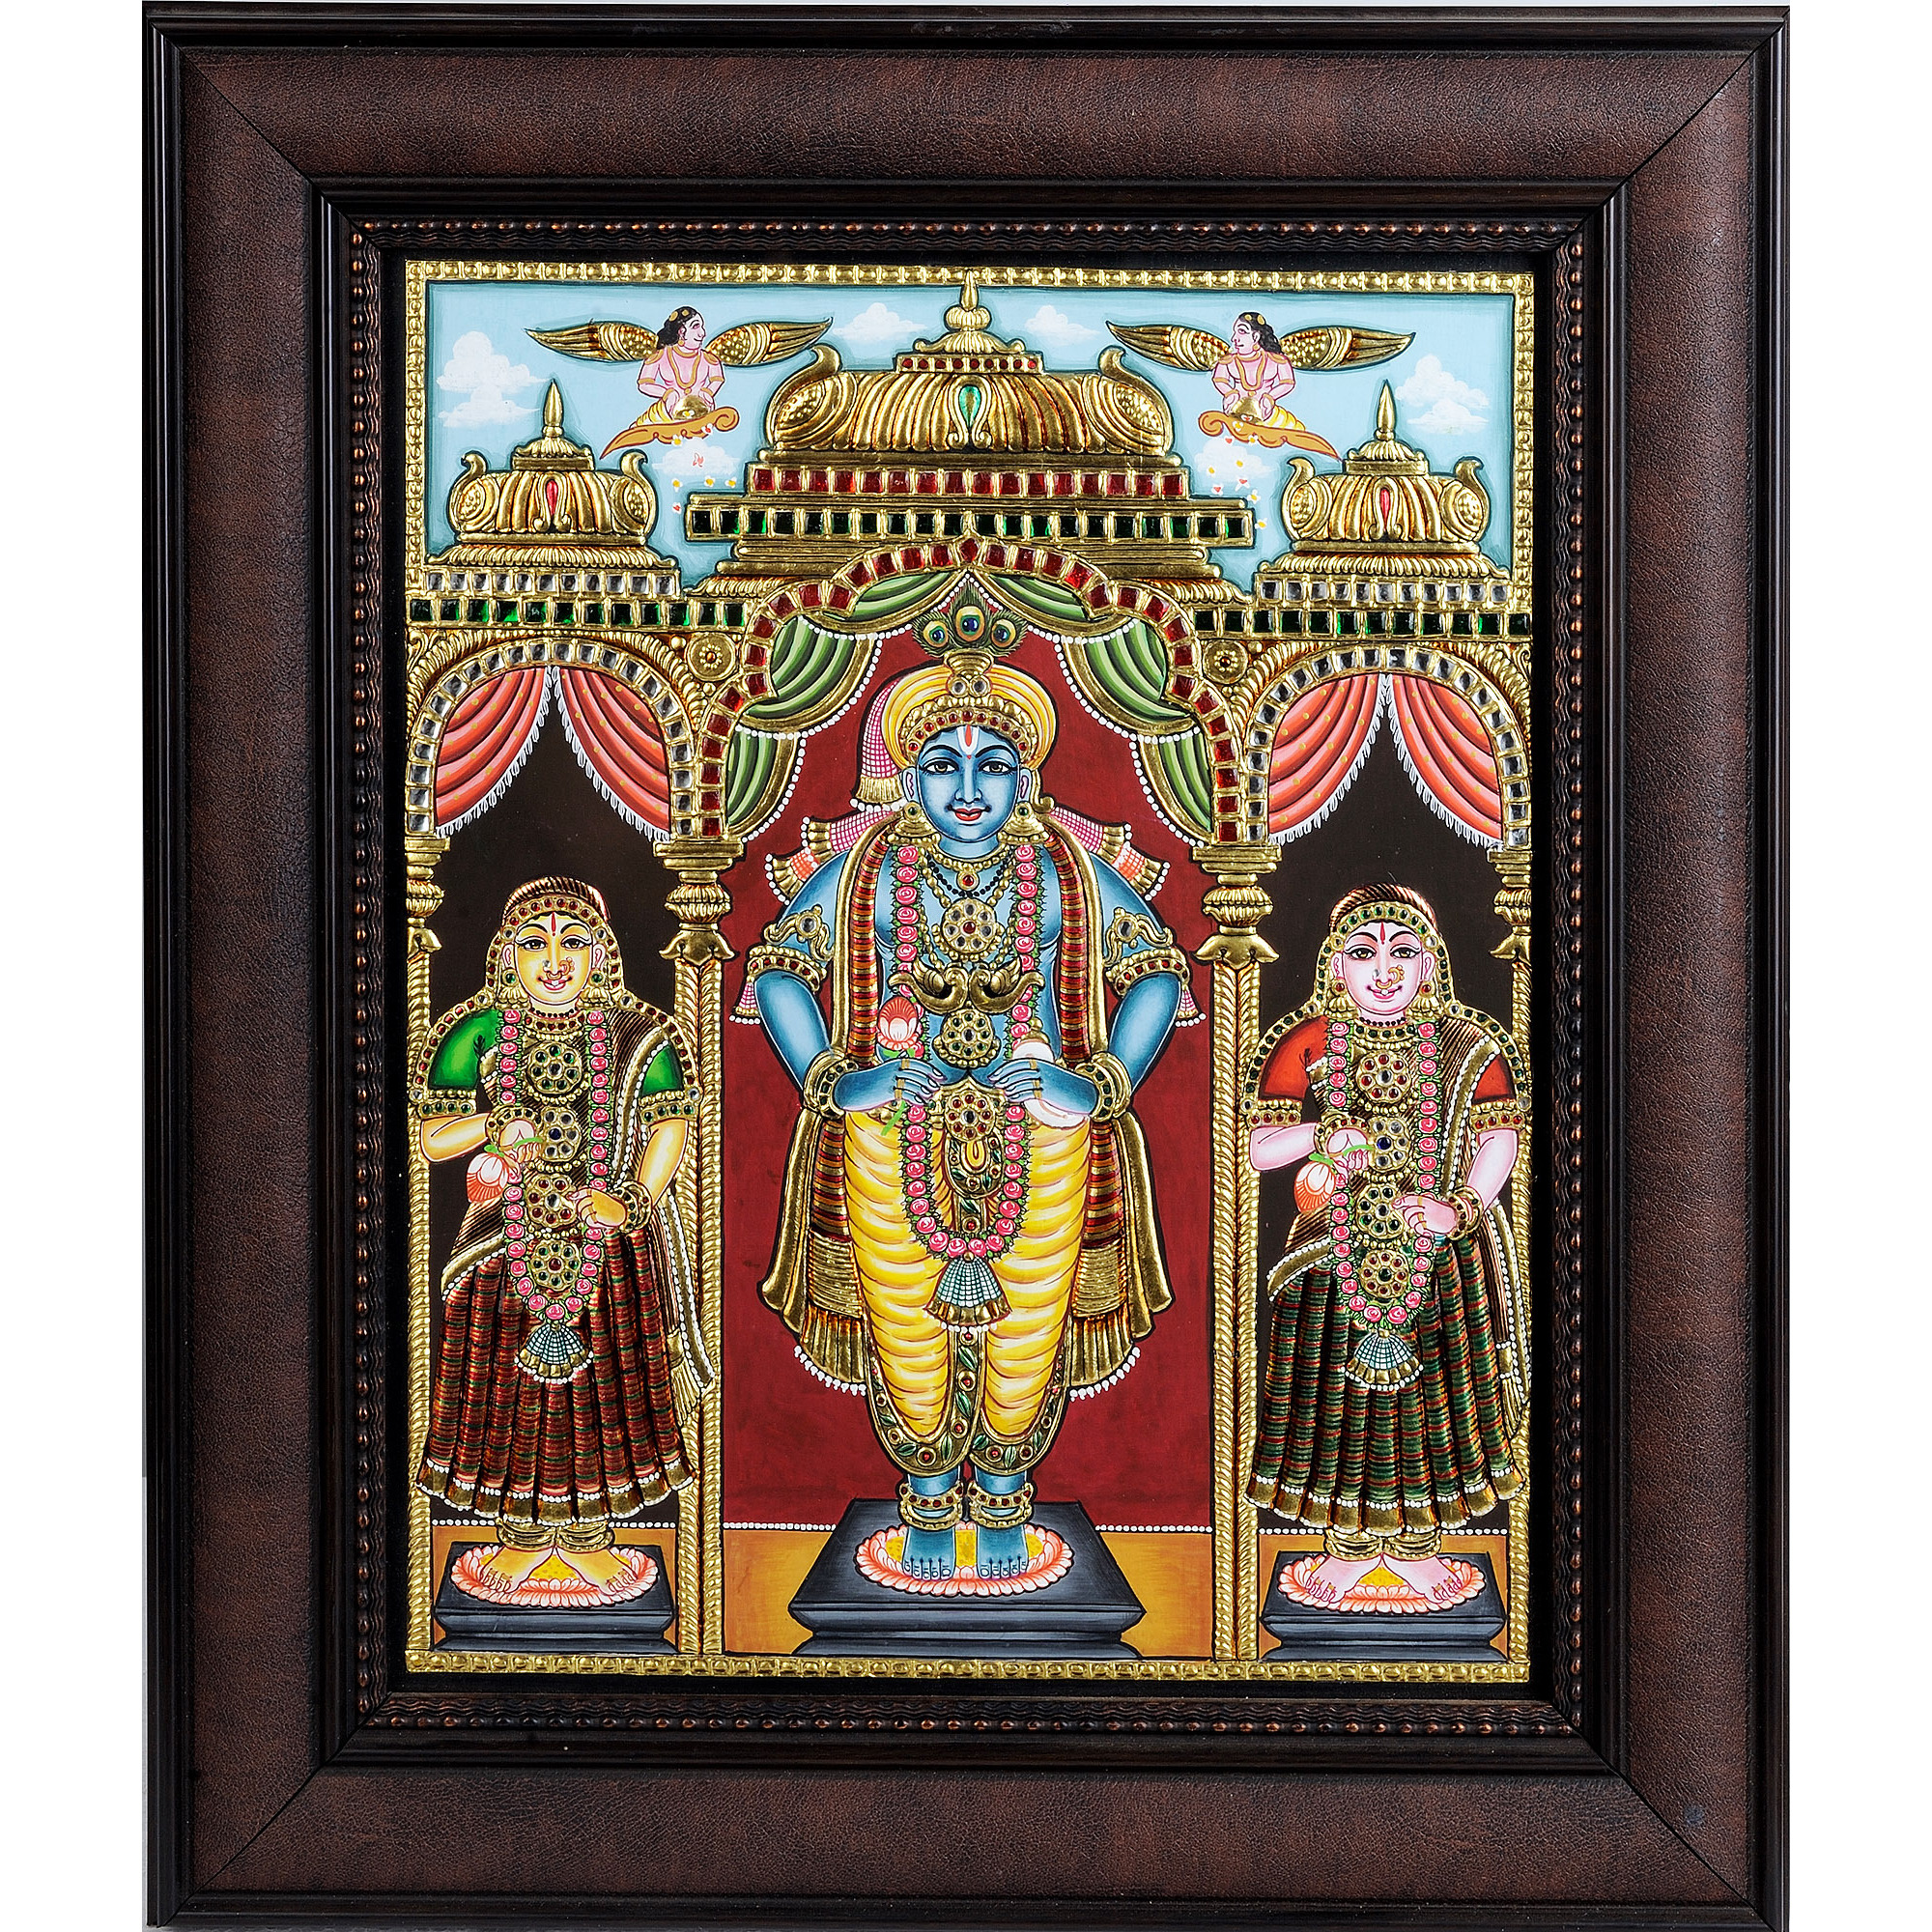 Shri Krishna with Rukmini and Satyabhama (Framed)